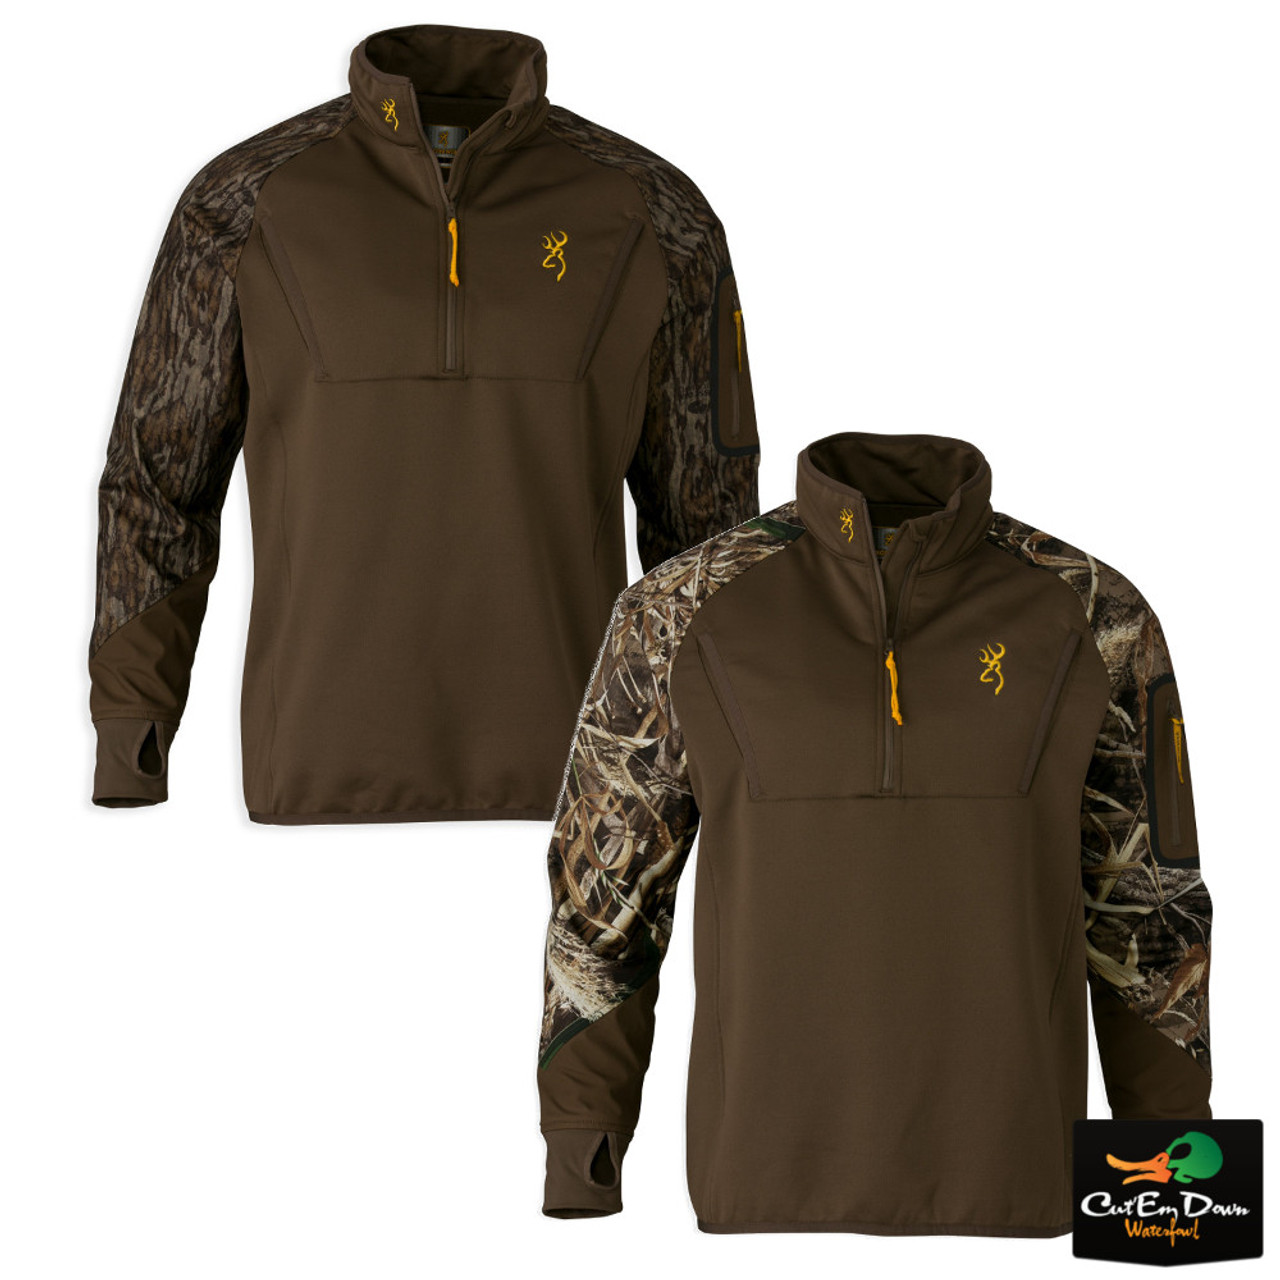 bccb5d9e70aa3 Browning Wicked Wing Timber Fleece 1/4 Zip Top